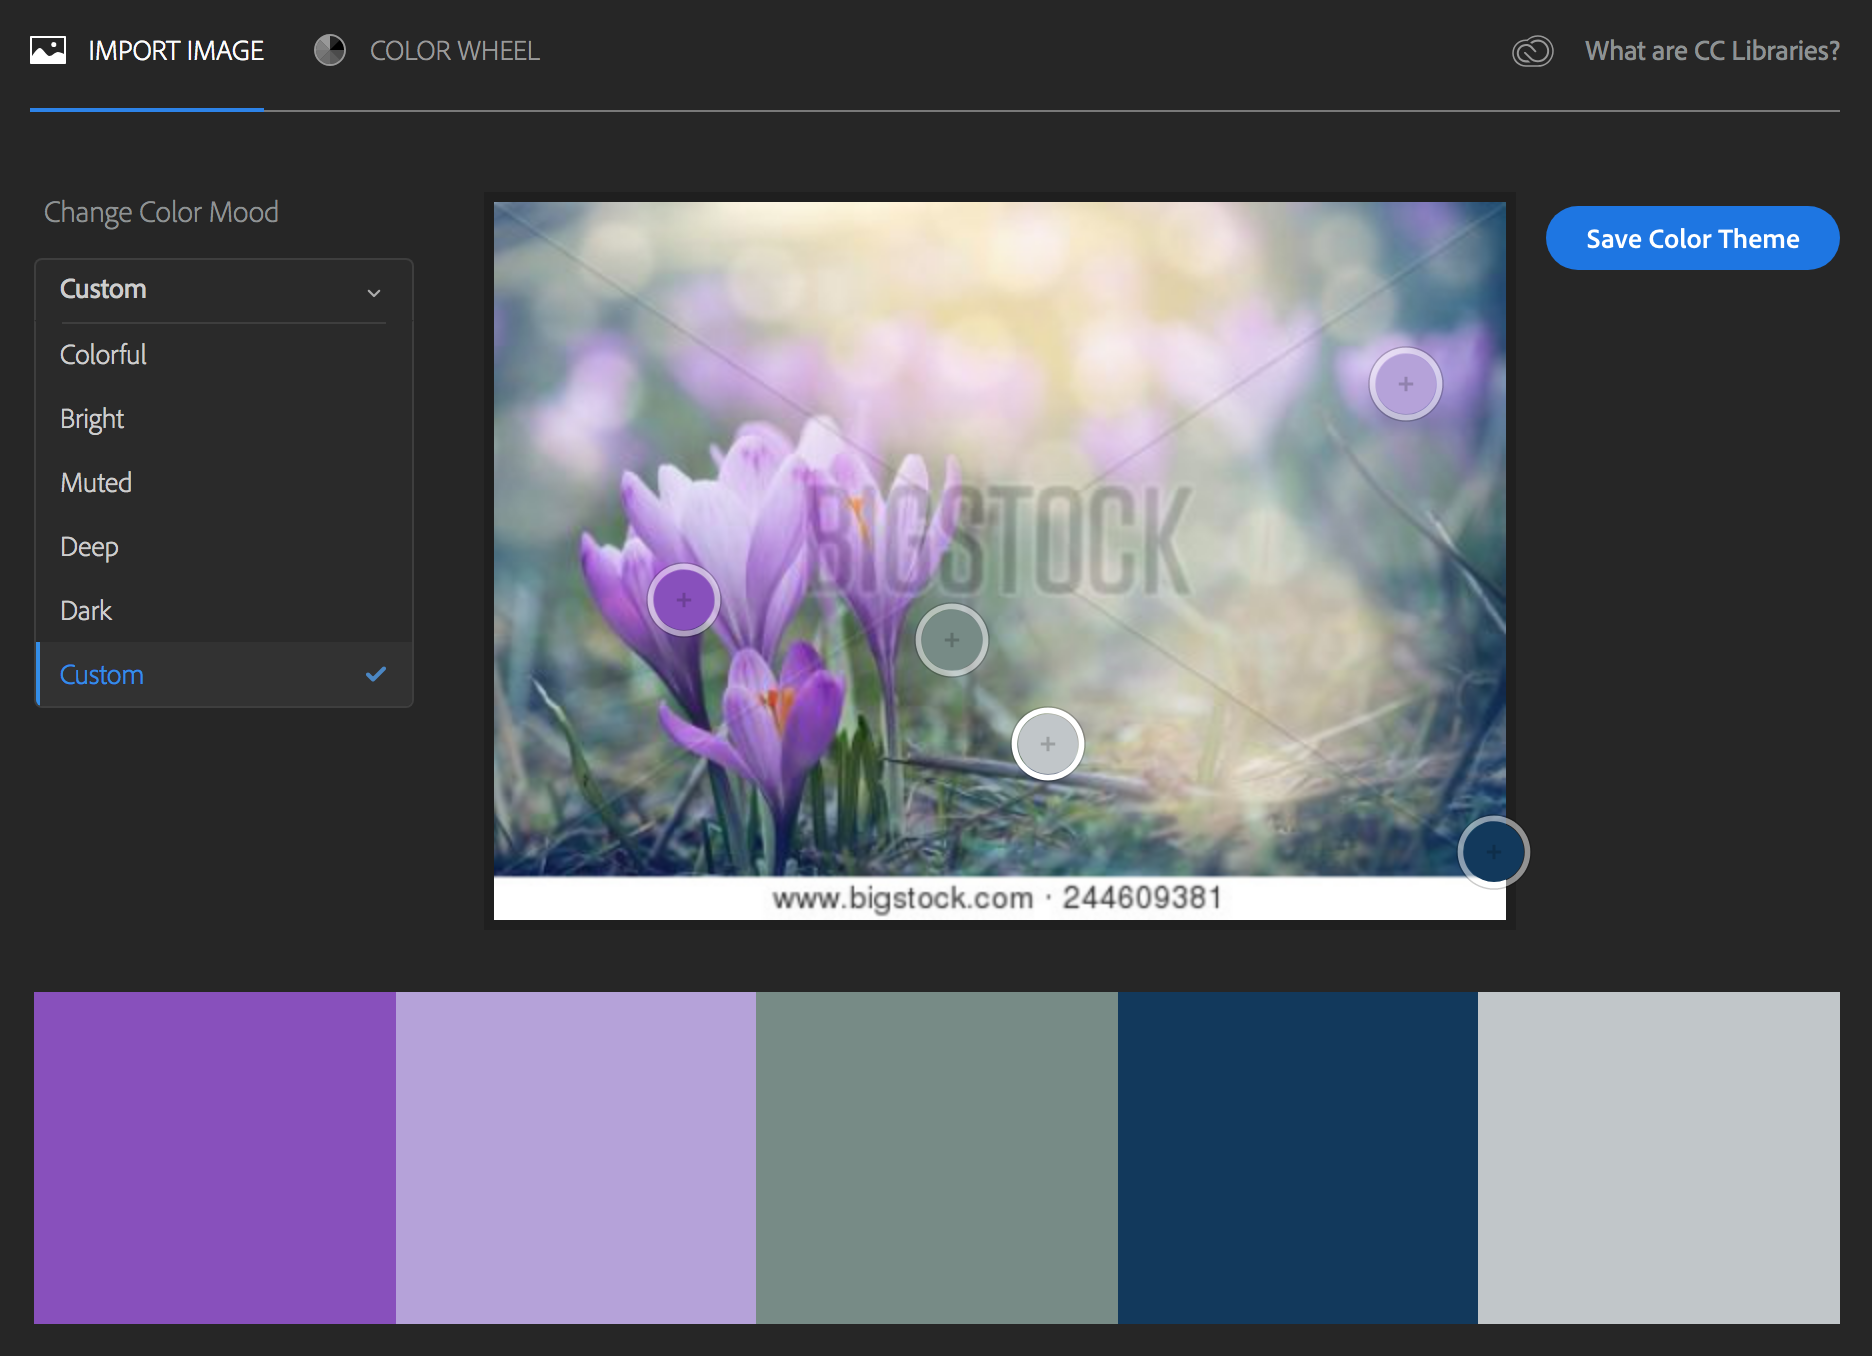 Adobe Color Selector color palette based on stock image